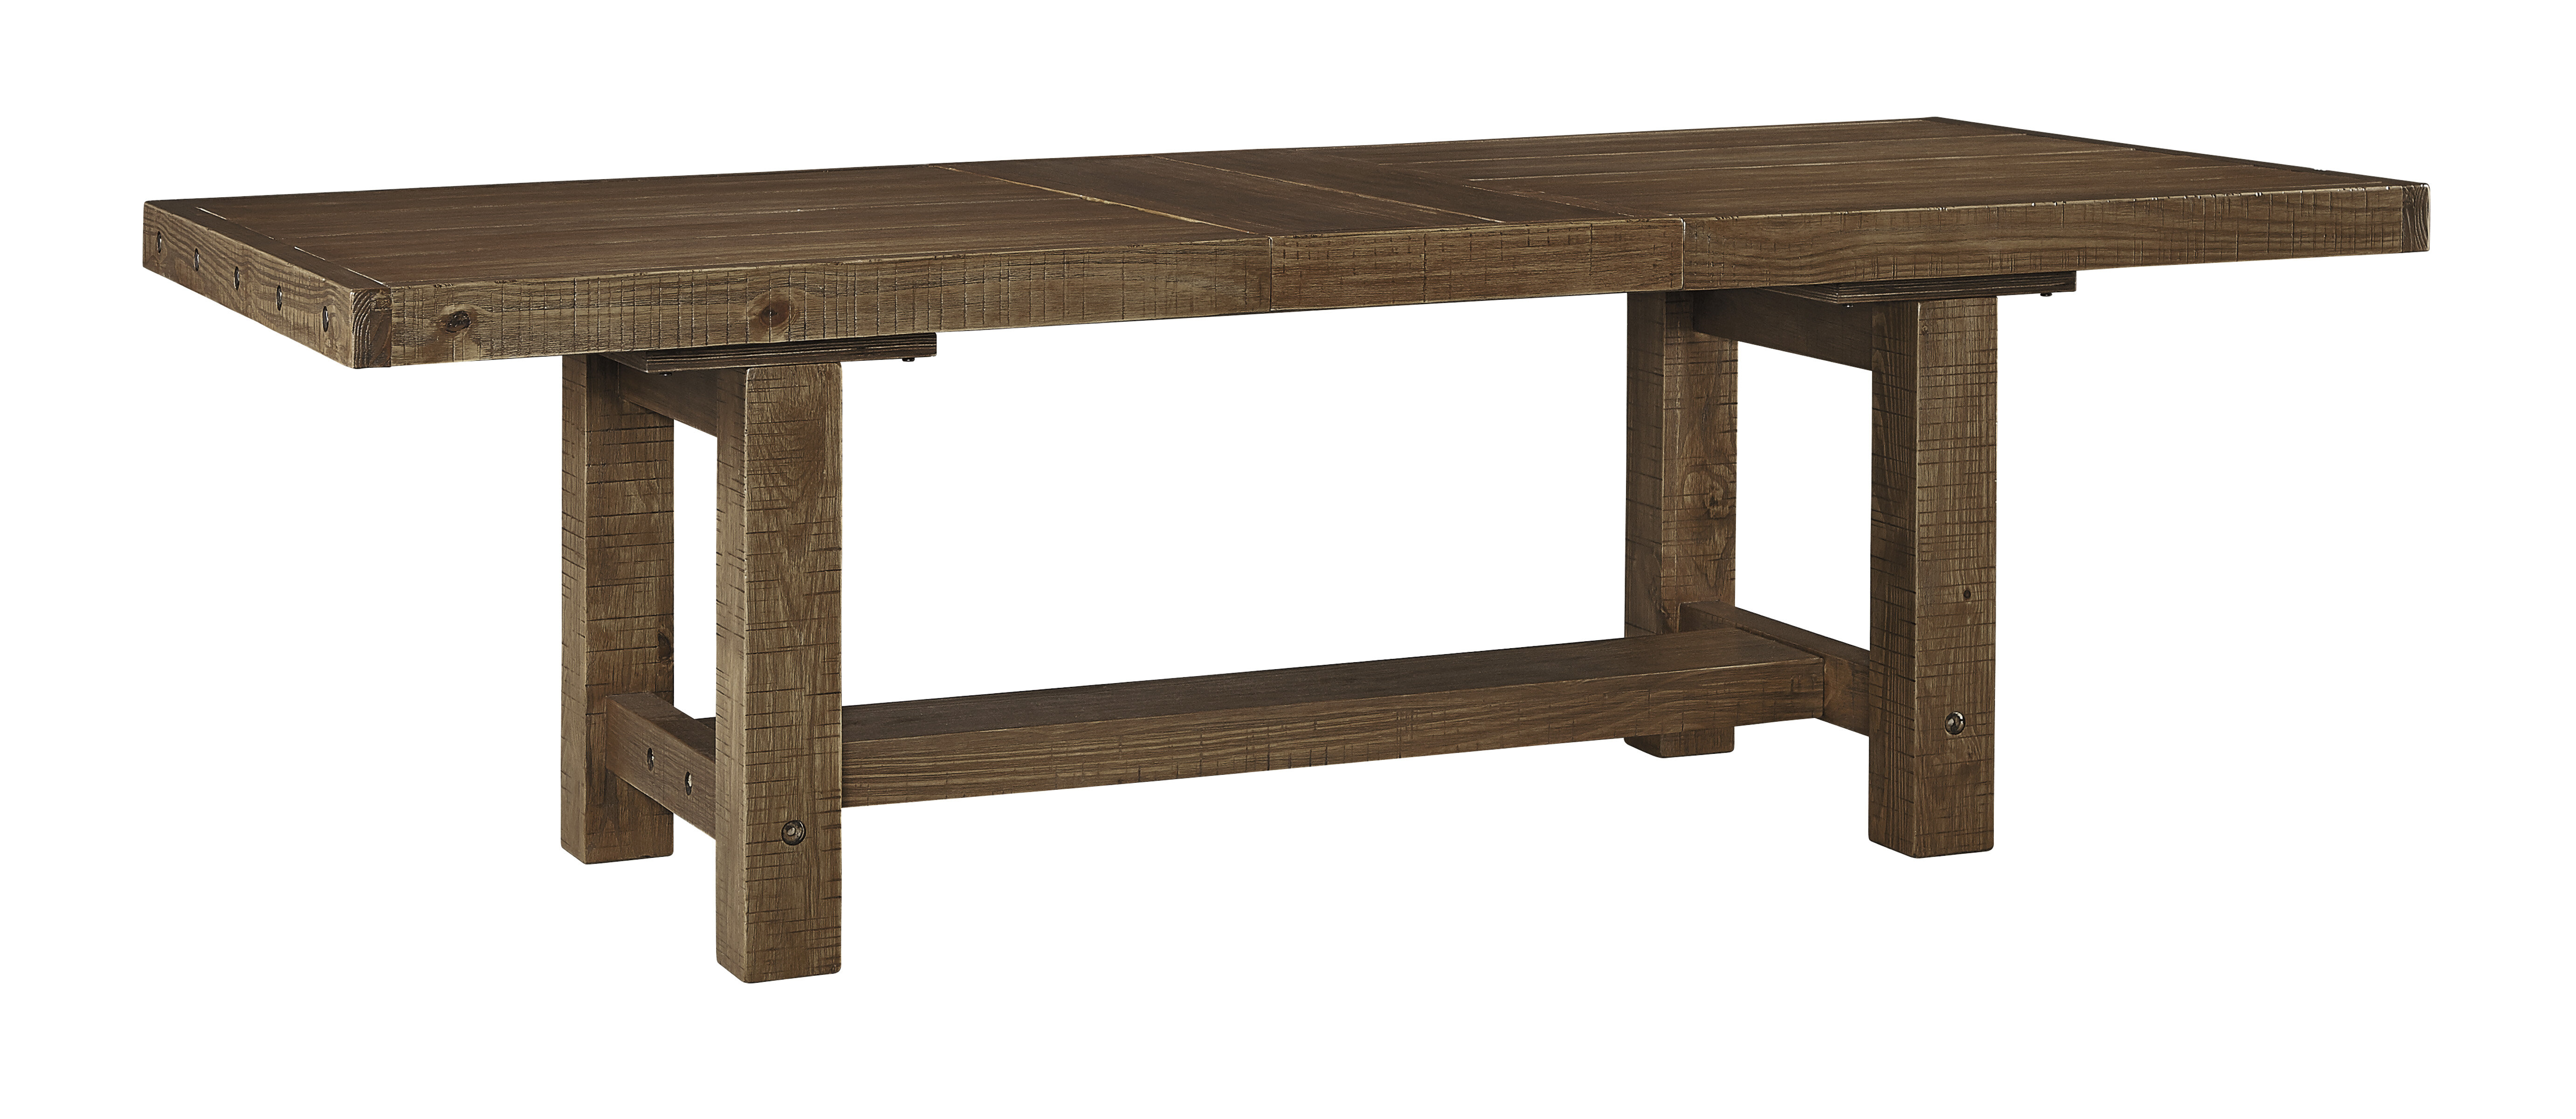 jun tables wood reclaimed table in best top updated extendable colborne dining